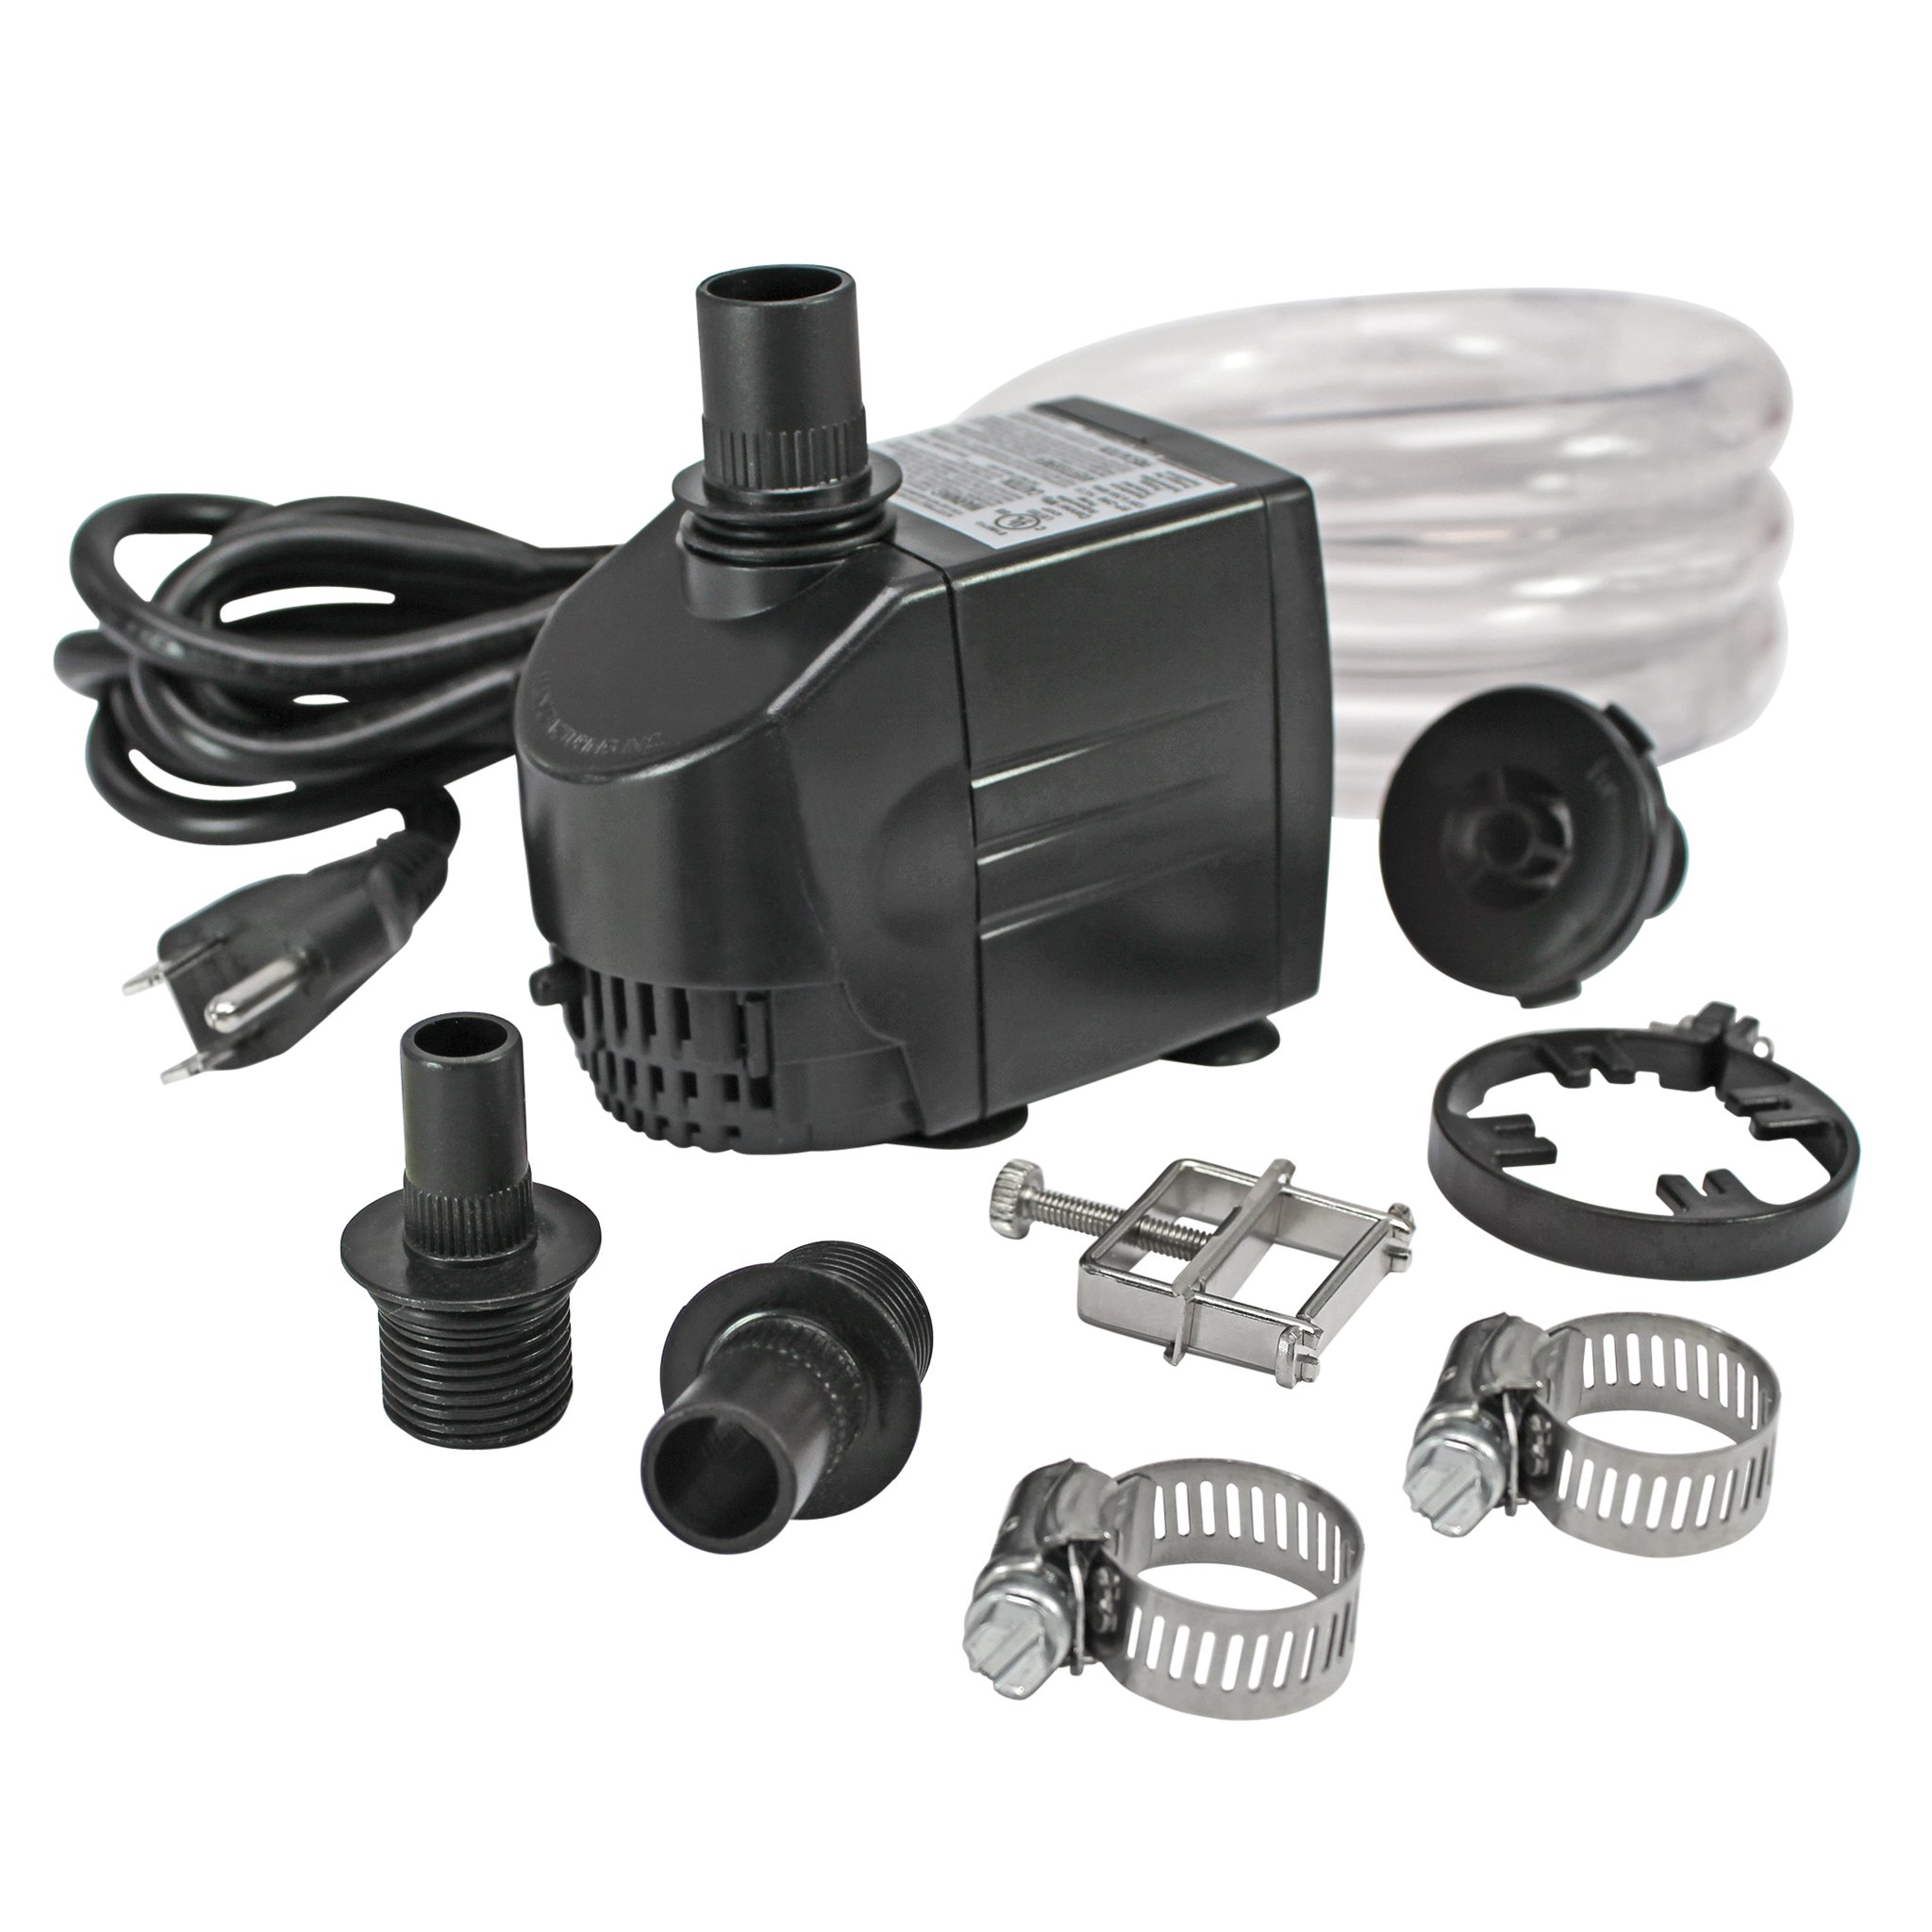 Design Toscano UL-Listed, Indoor/Outdoor, 290 GPH Pump Kit